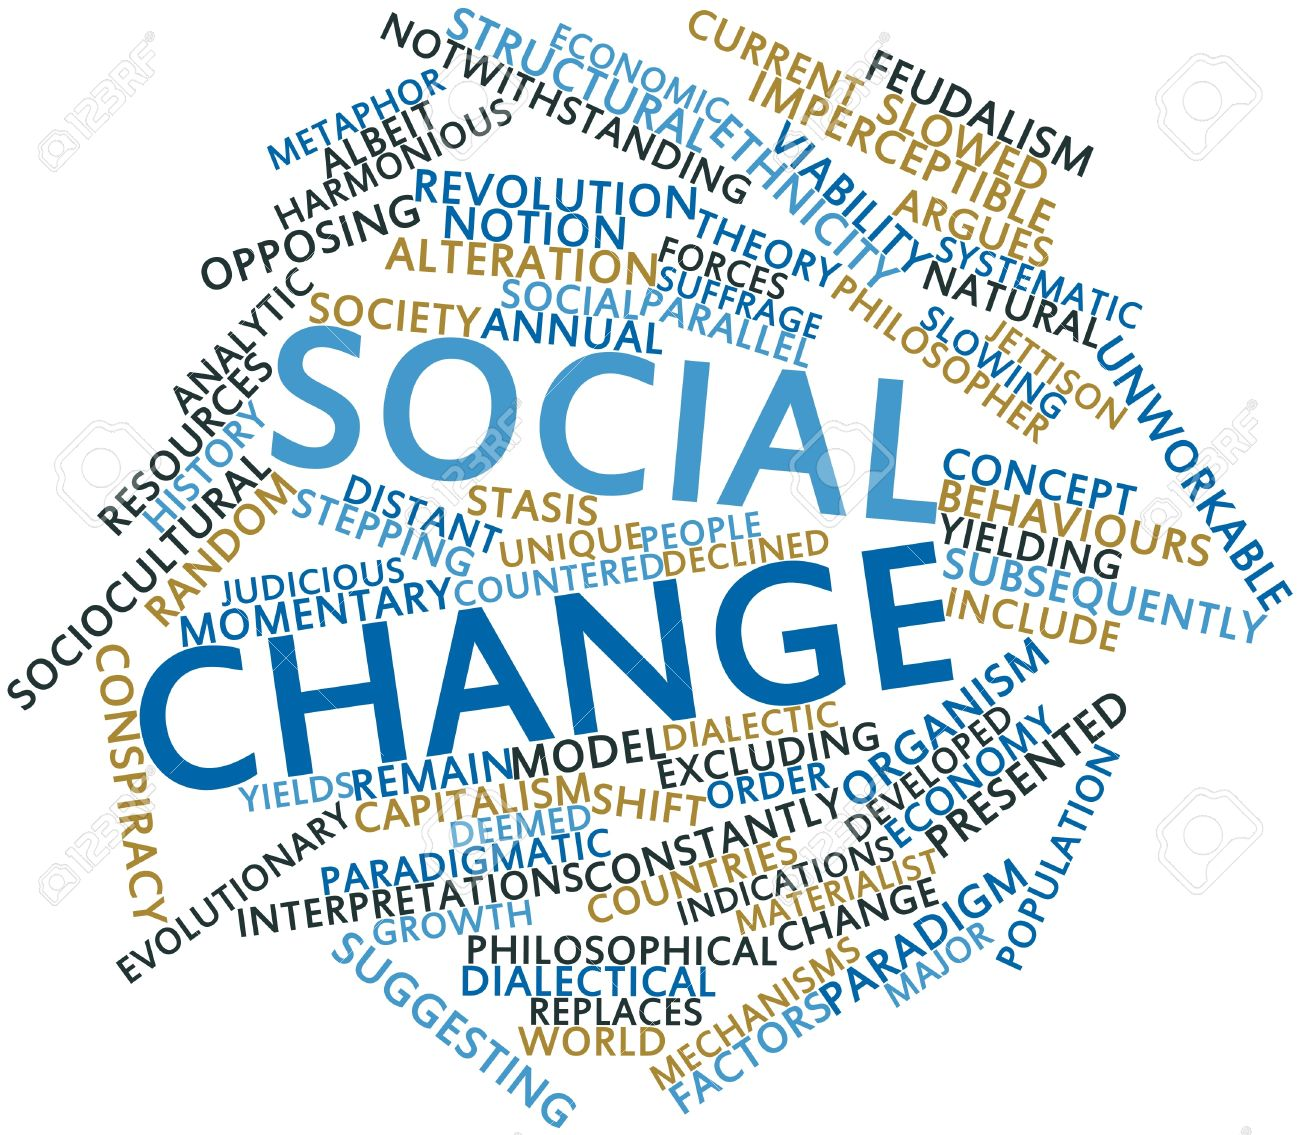 Essays About Nursing Abstract Word Cloud For Social Change With Related Tags And Terms Abstract  Word Cloud For Social Essay On Care also Diversity Scholarship Essay Social Change Essay The Real Poop On Social Change Franke James Role  The Handsomest Drowned Man In The World Essay